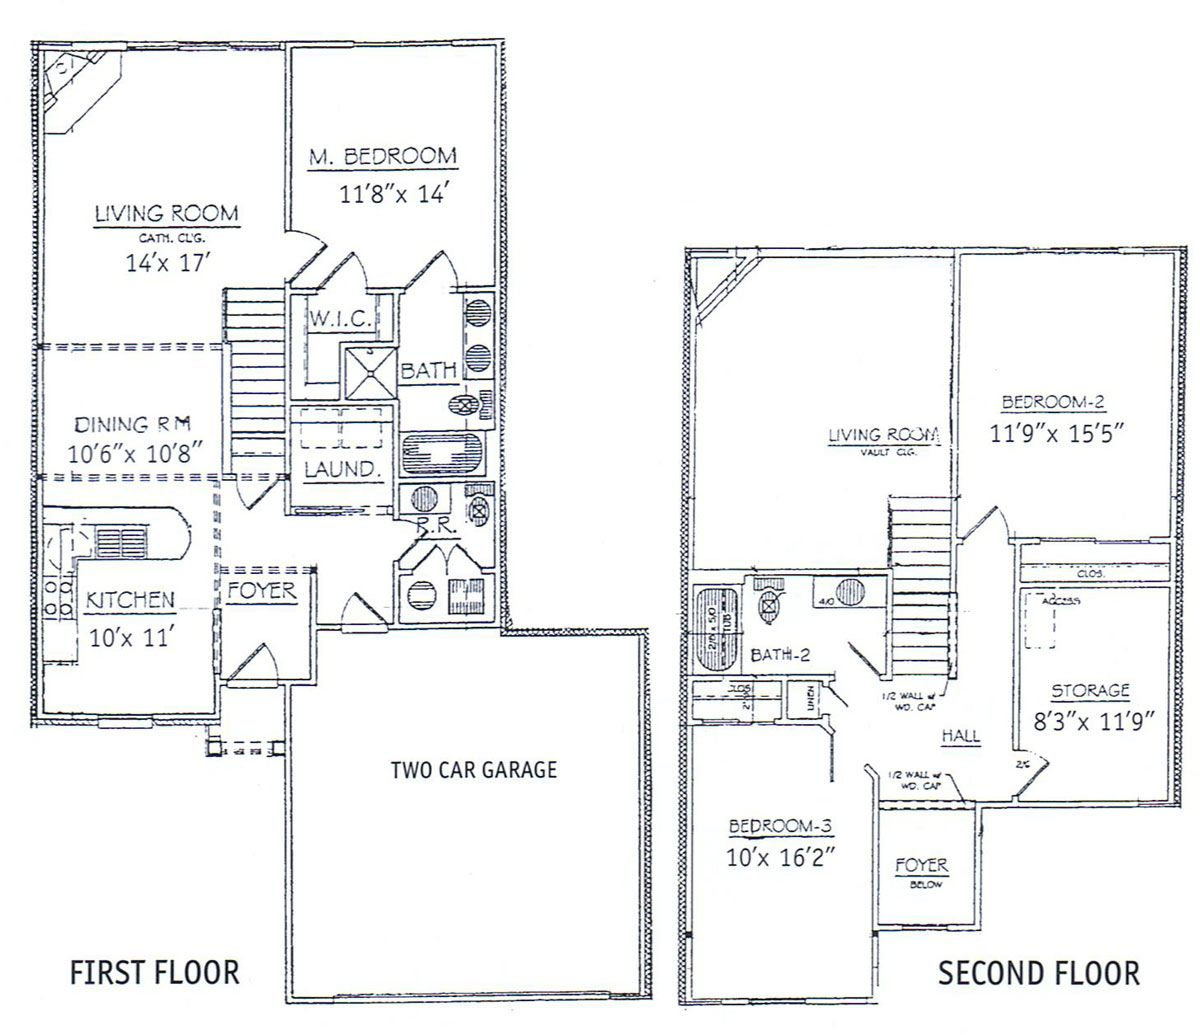 3 bedrooms floor plans 2 story bdrm basement the two for Floor plan 2 bedroom